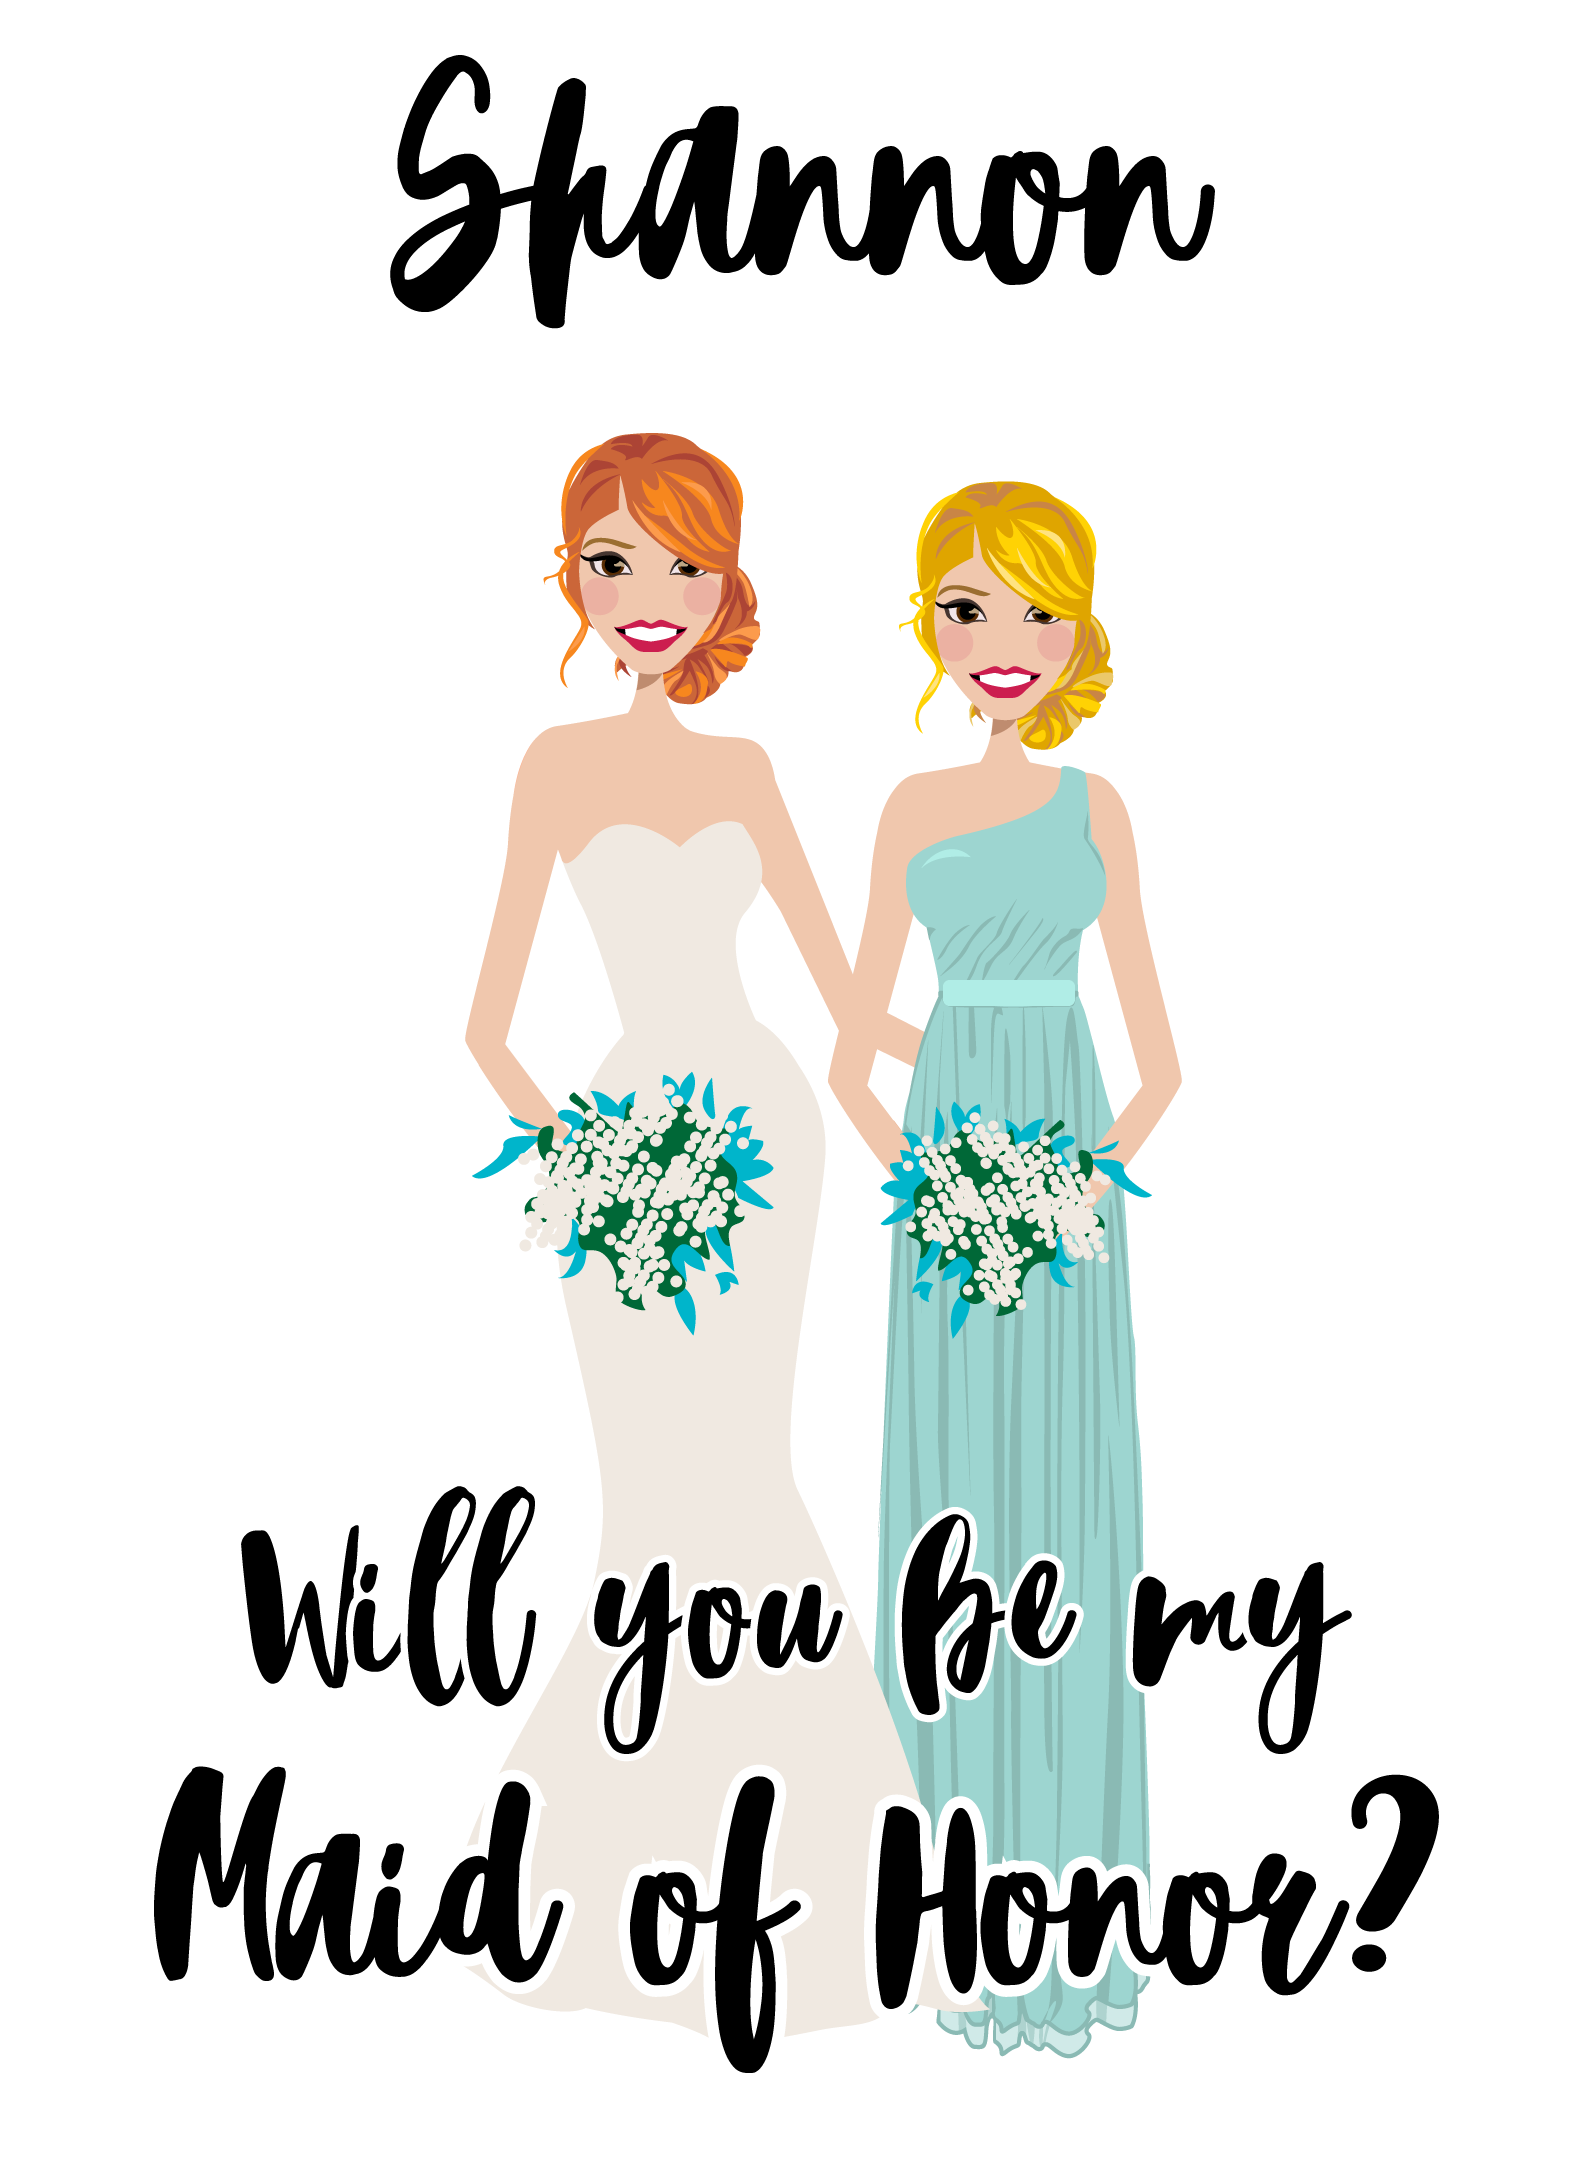 Final Design of Custom Illustration - Here are the final designs (right and above) that Allison approved. They are beautiful vector illustrations of her with her bridesmaid and Maid of Honor.